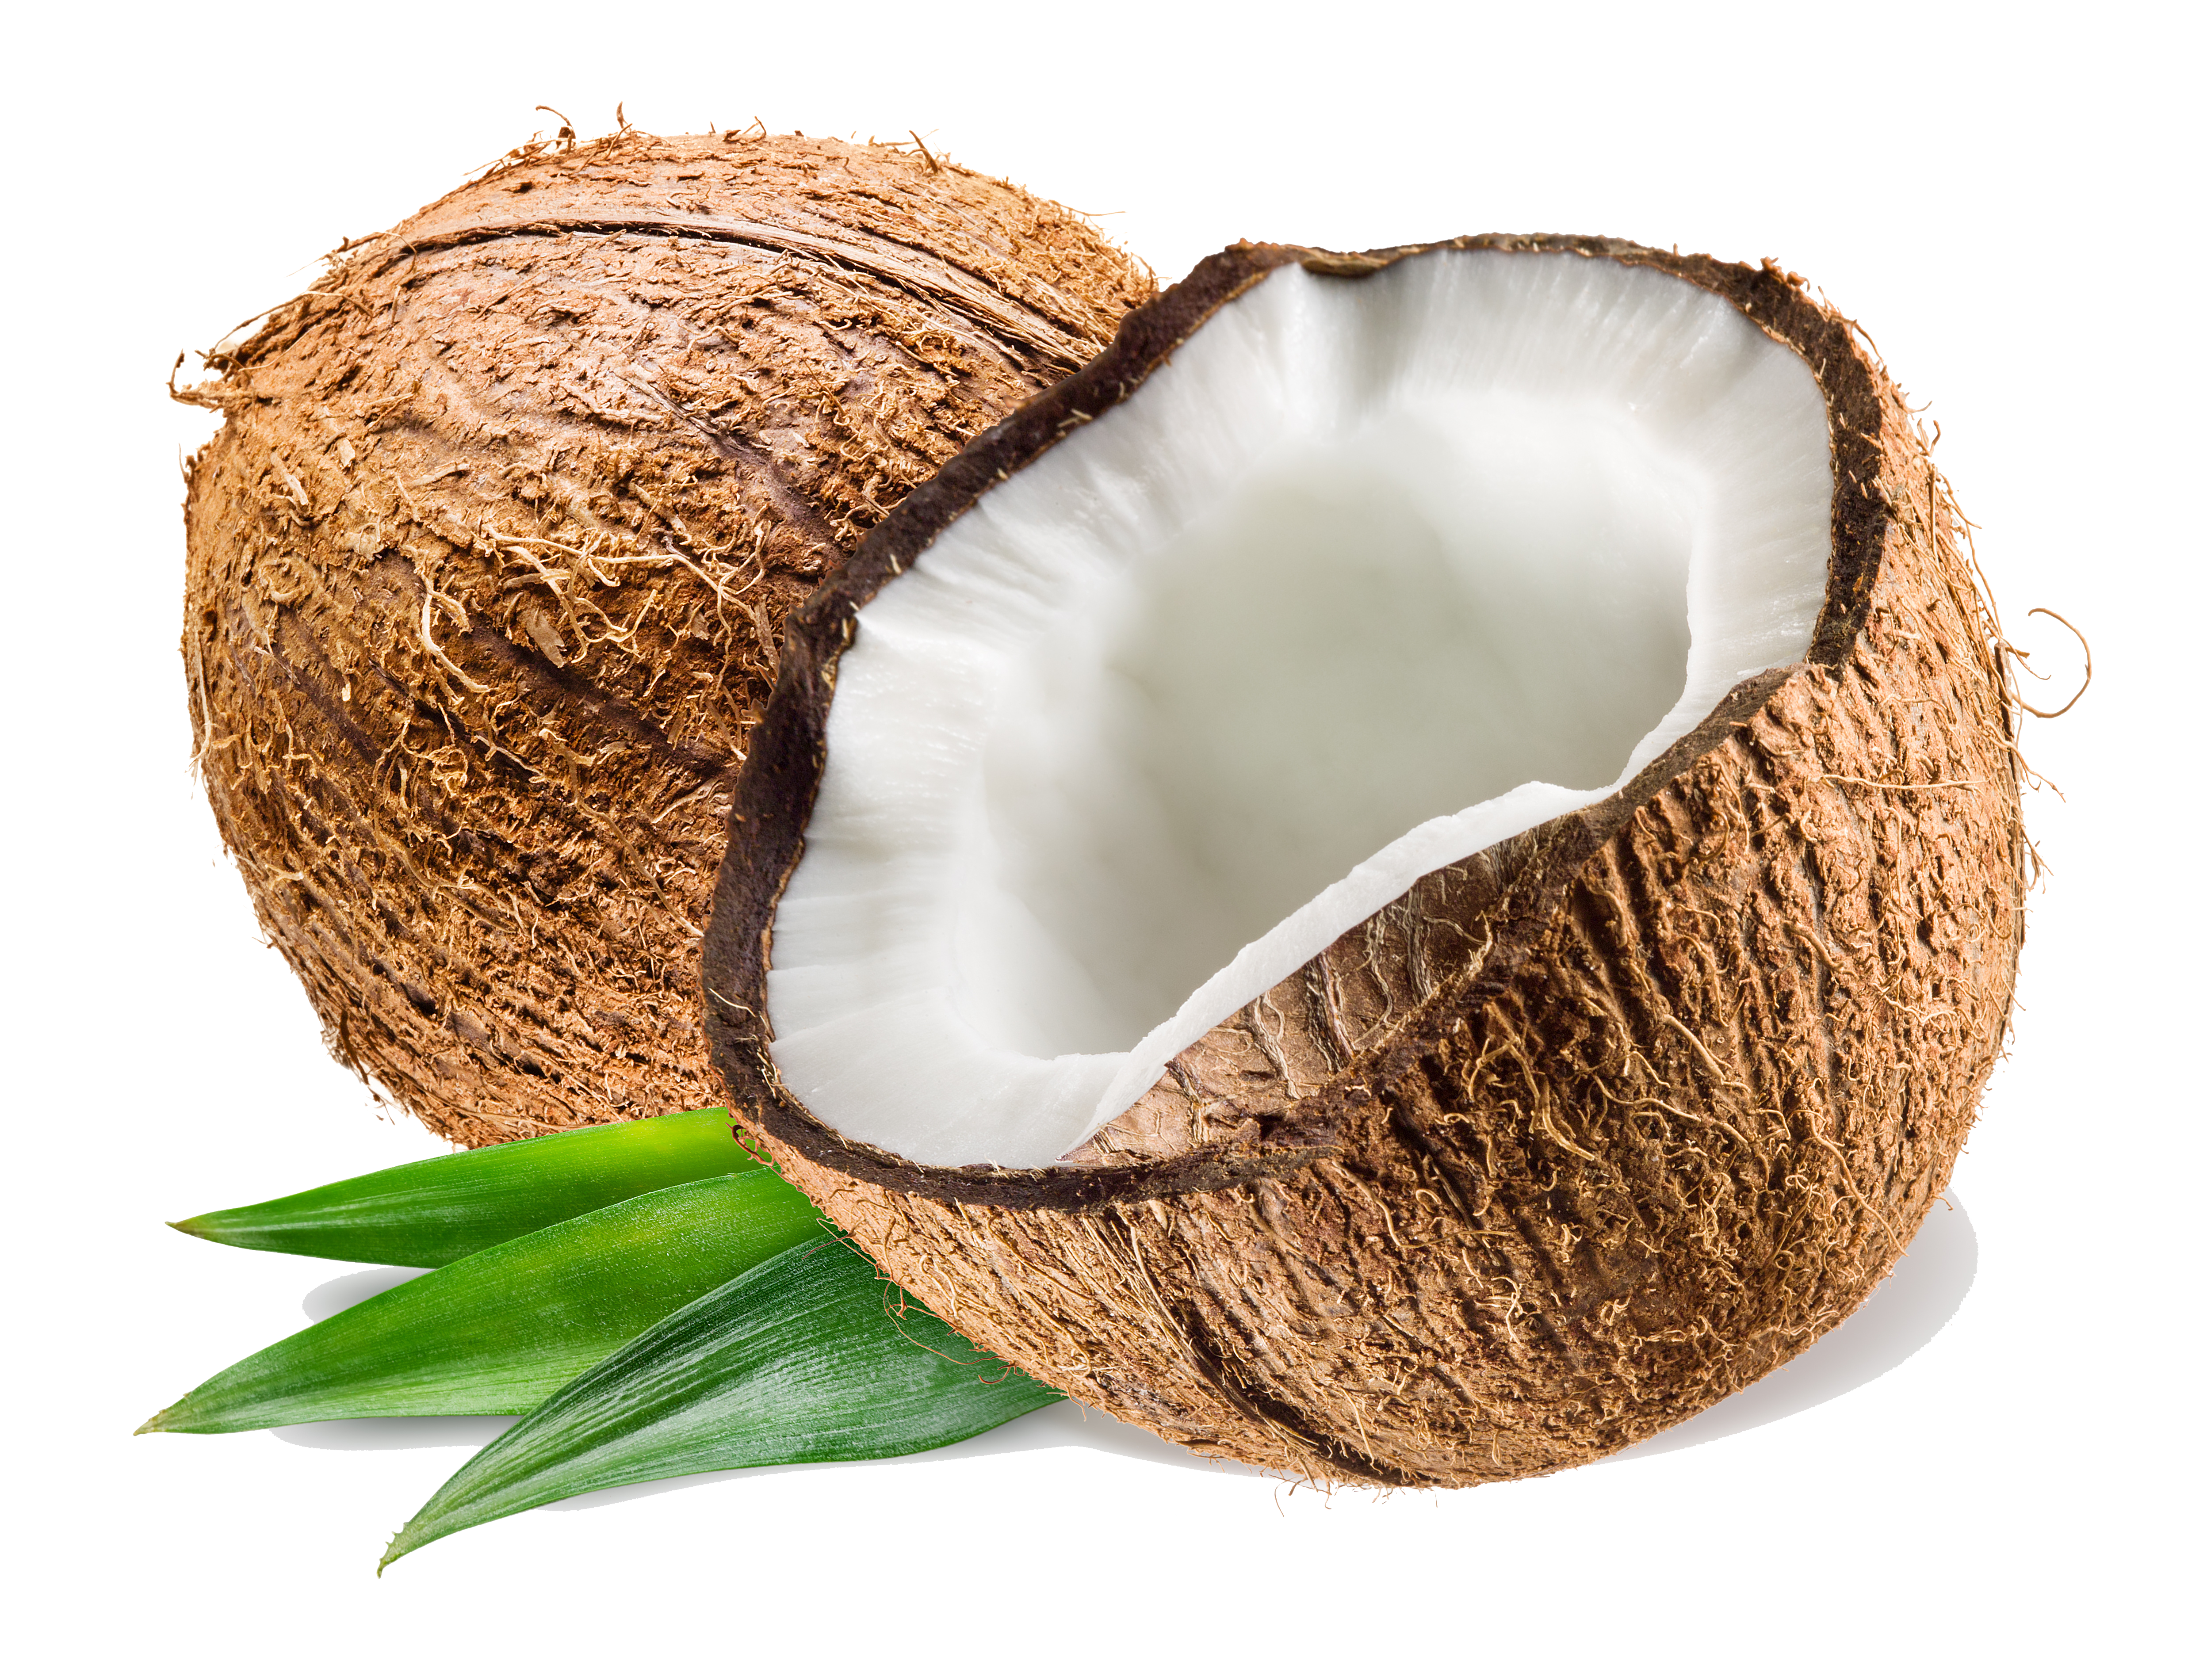 Coconut PNG - 26623